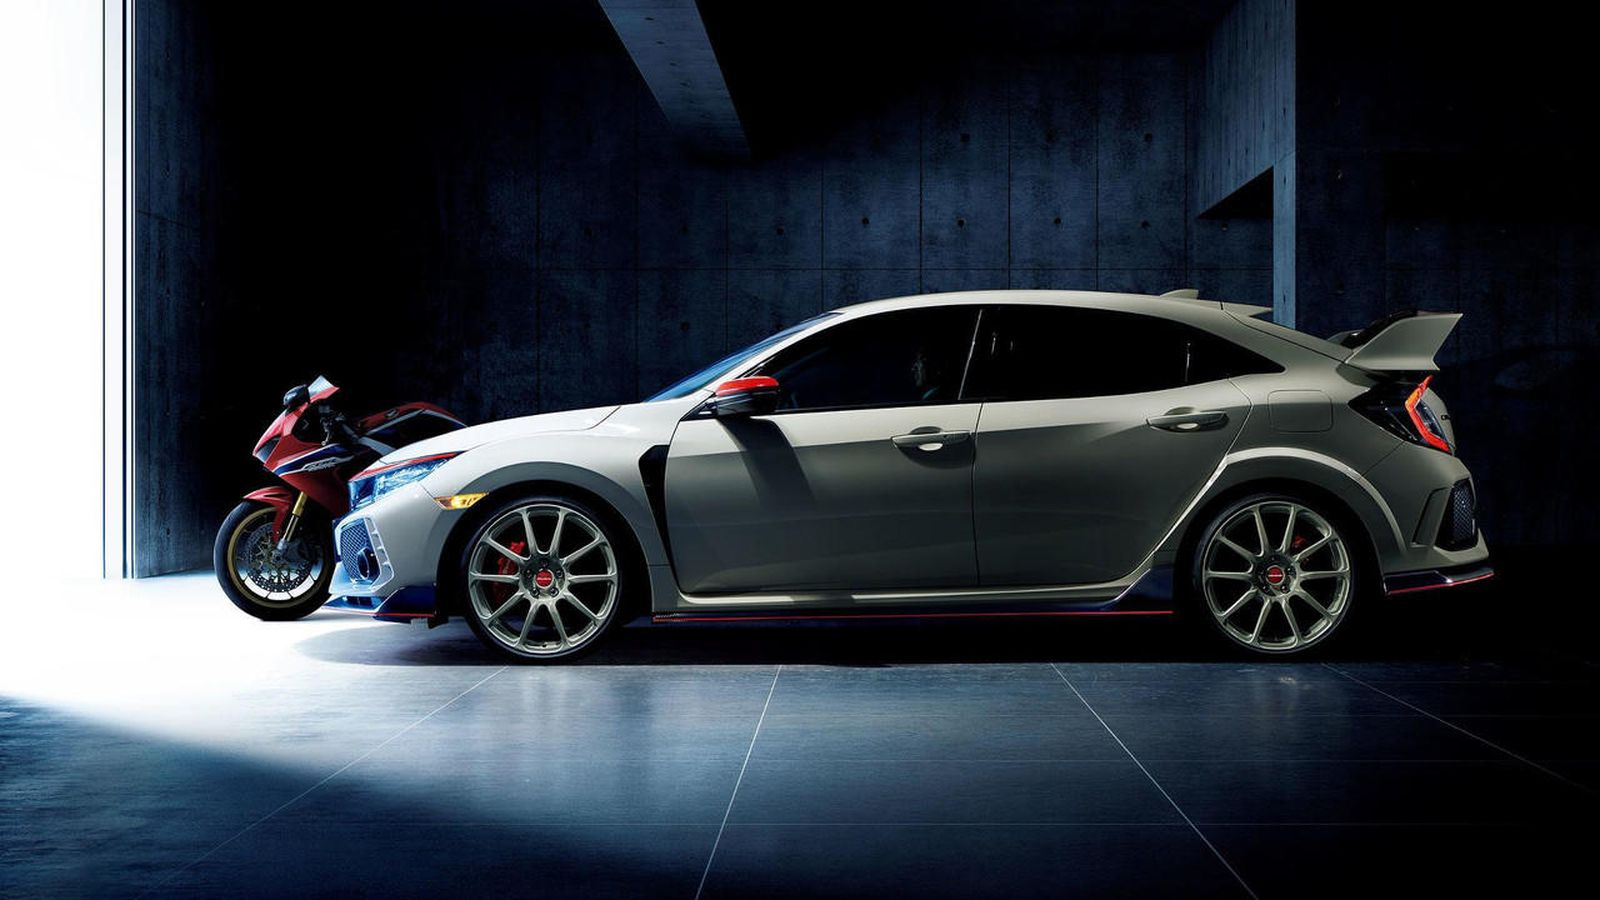 Japanese Civic Type R accessories are cool hella expensive  Lee